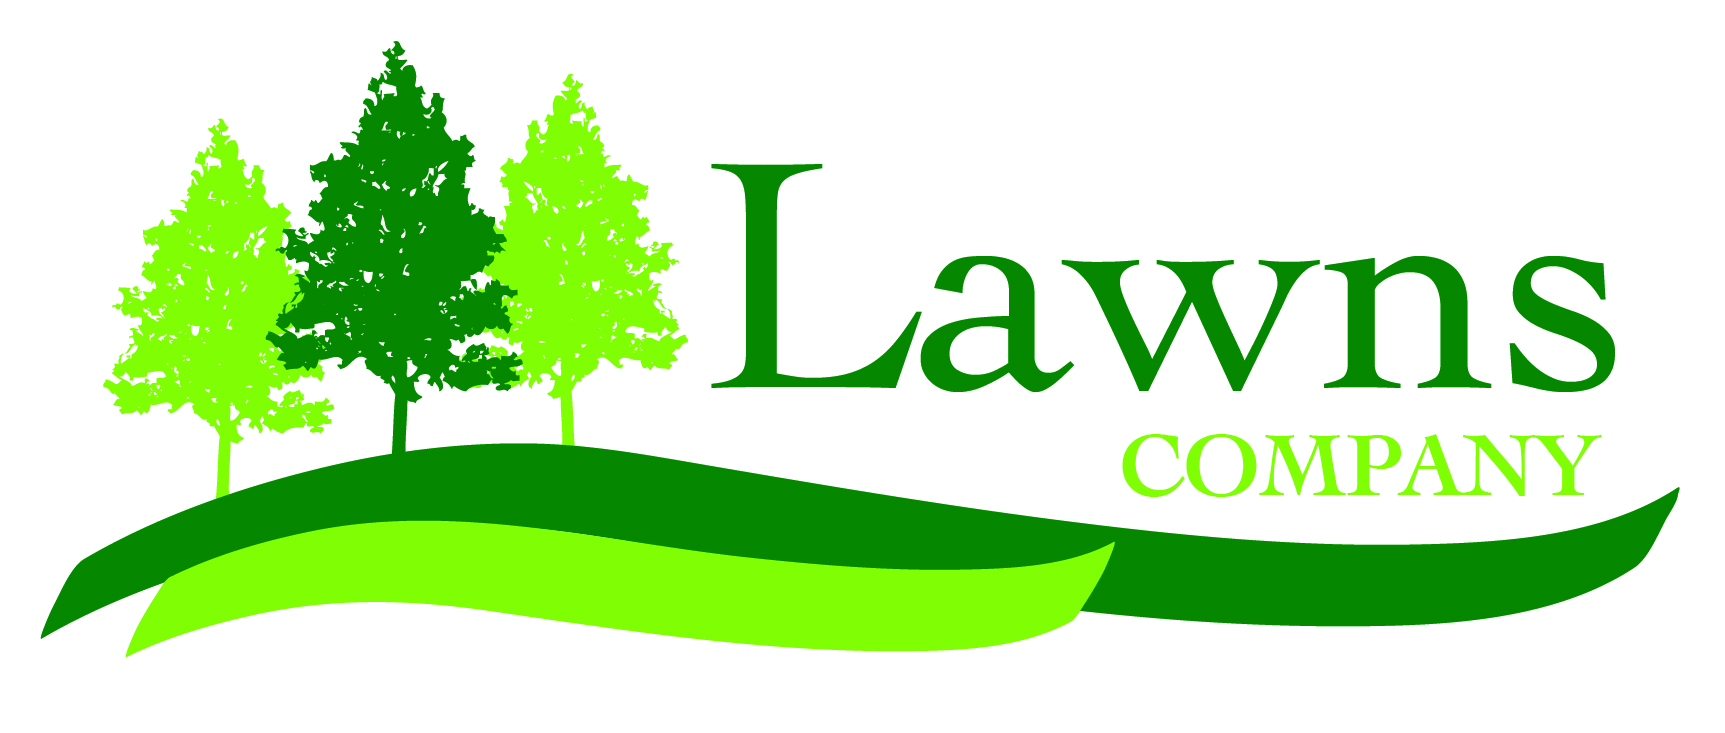 Lawn care clipart design. Logo free logos amusing